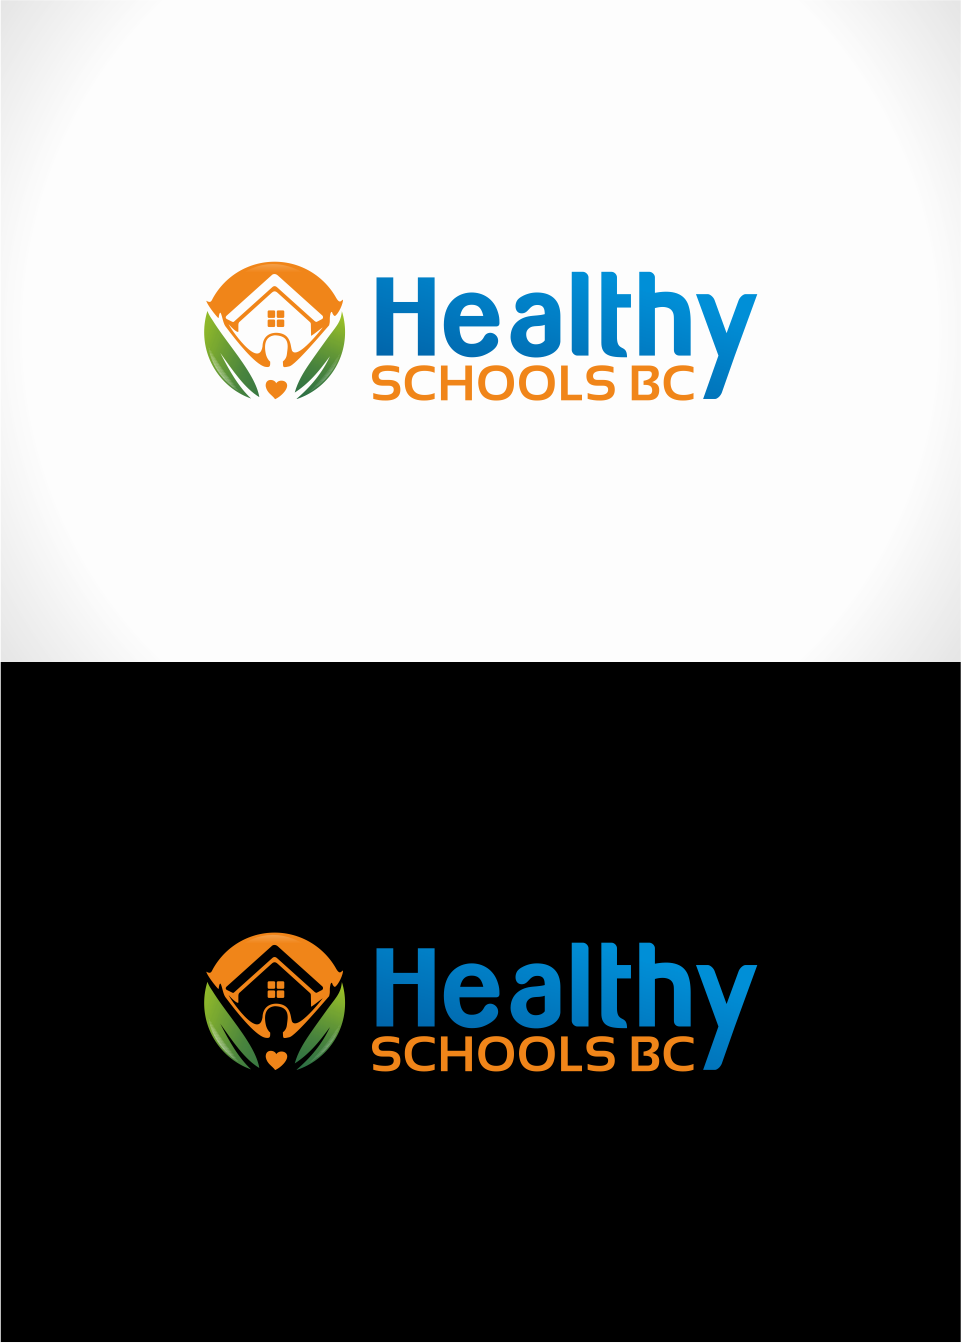 Logo Design by Mitchnick Sunardi - Entry No. 35 in the Logo Design Contest SImple, Creative and Clean Logo Design for Healthy Schools British Columbia, Canada.